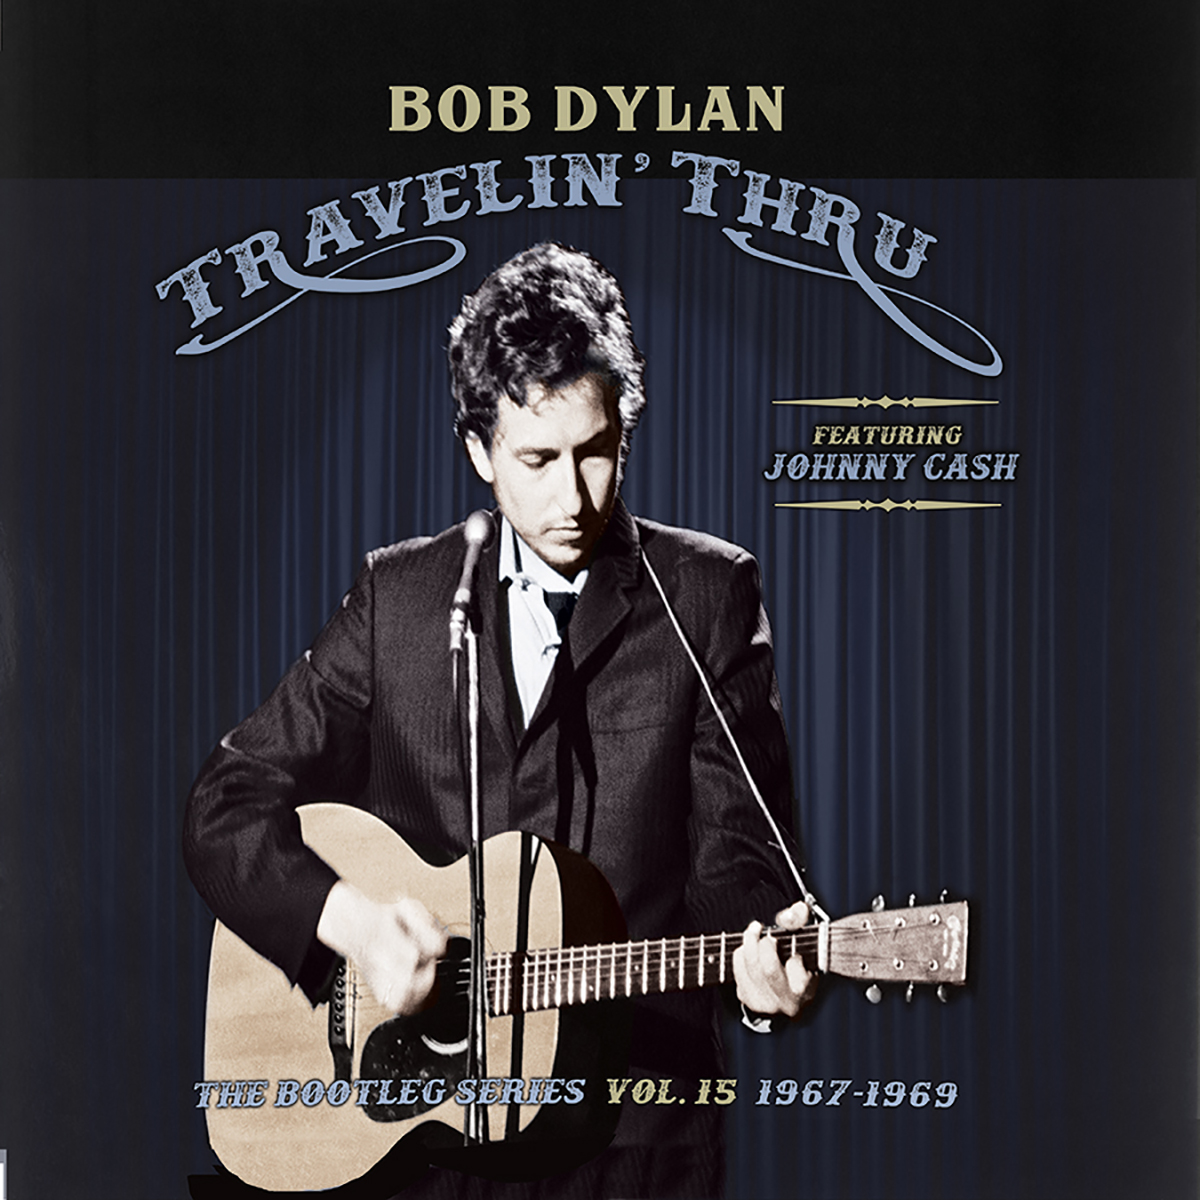 Bob Dylan (featuring Johnny Cash) – Travelin' Thru, 1967 – 1969: The Bootleg Series Vol. 15